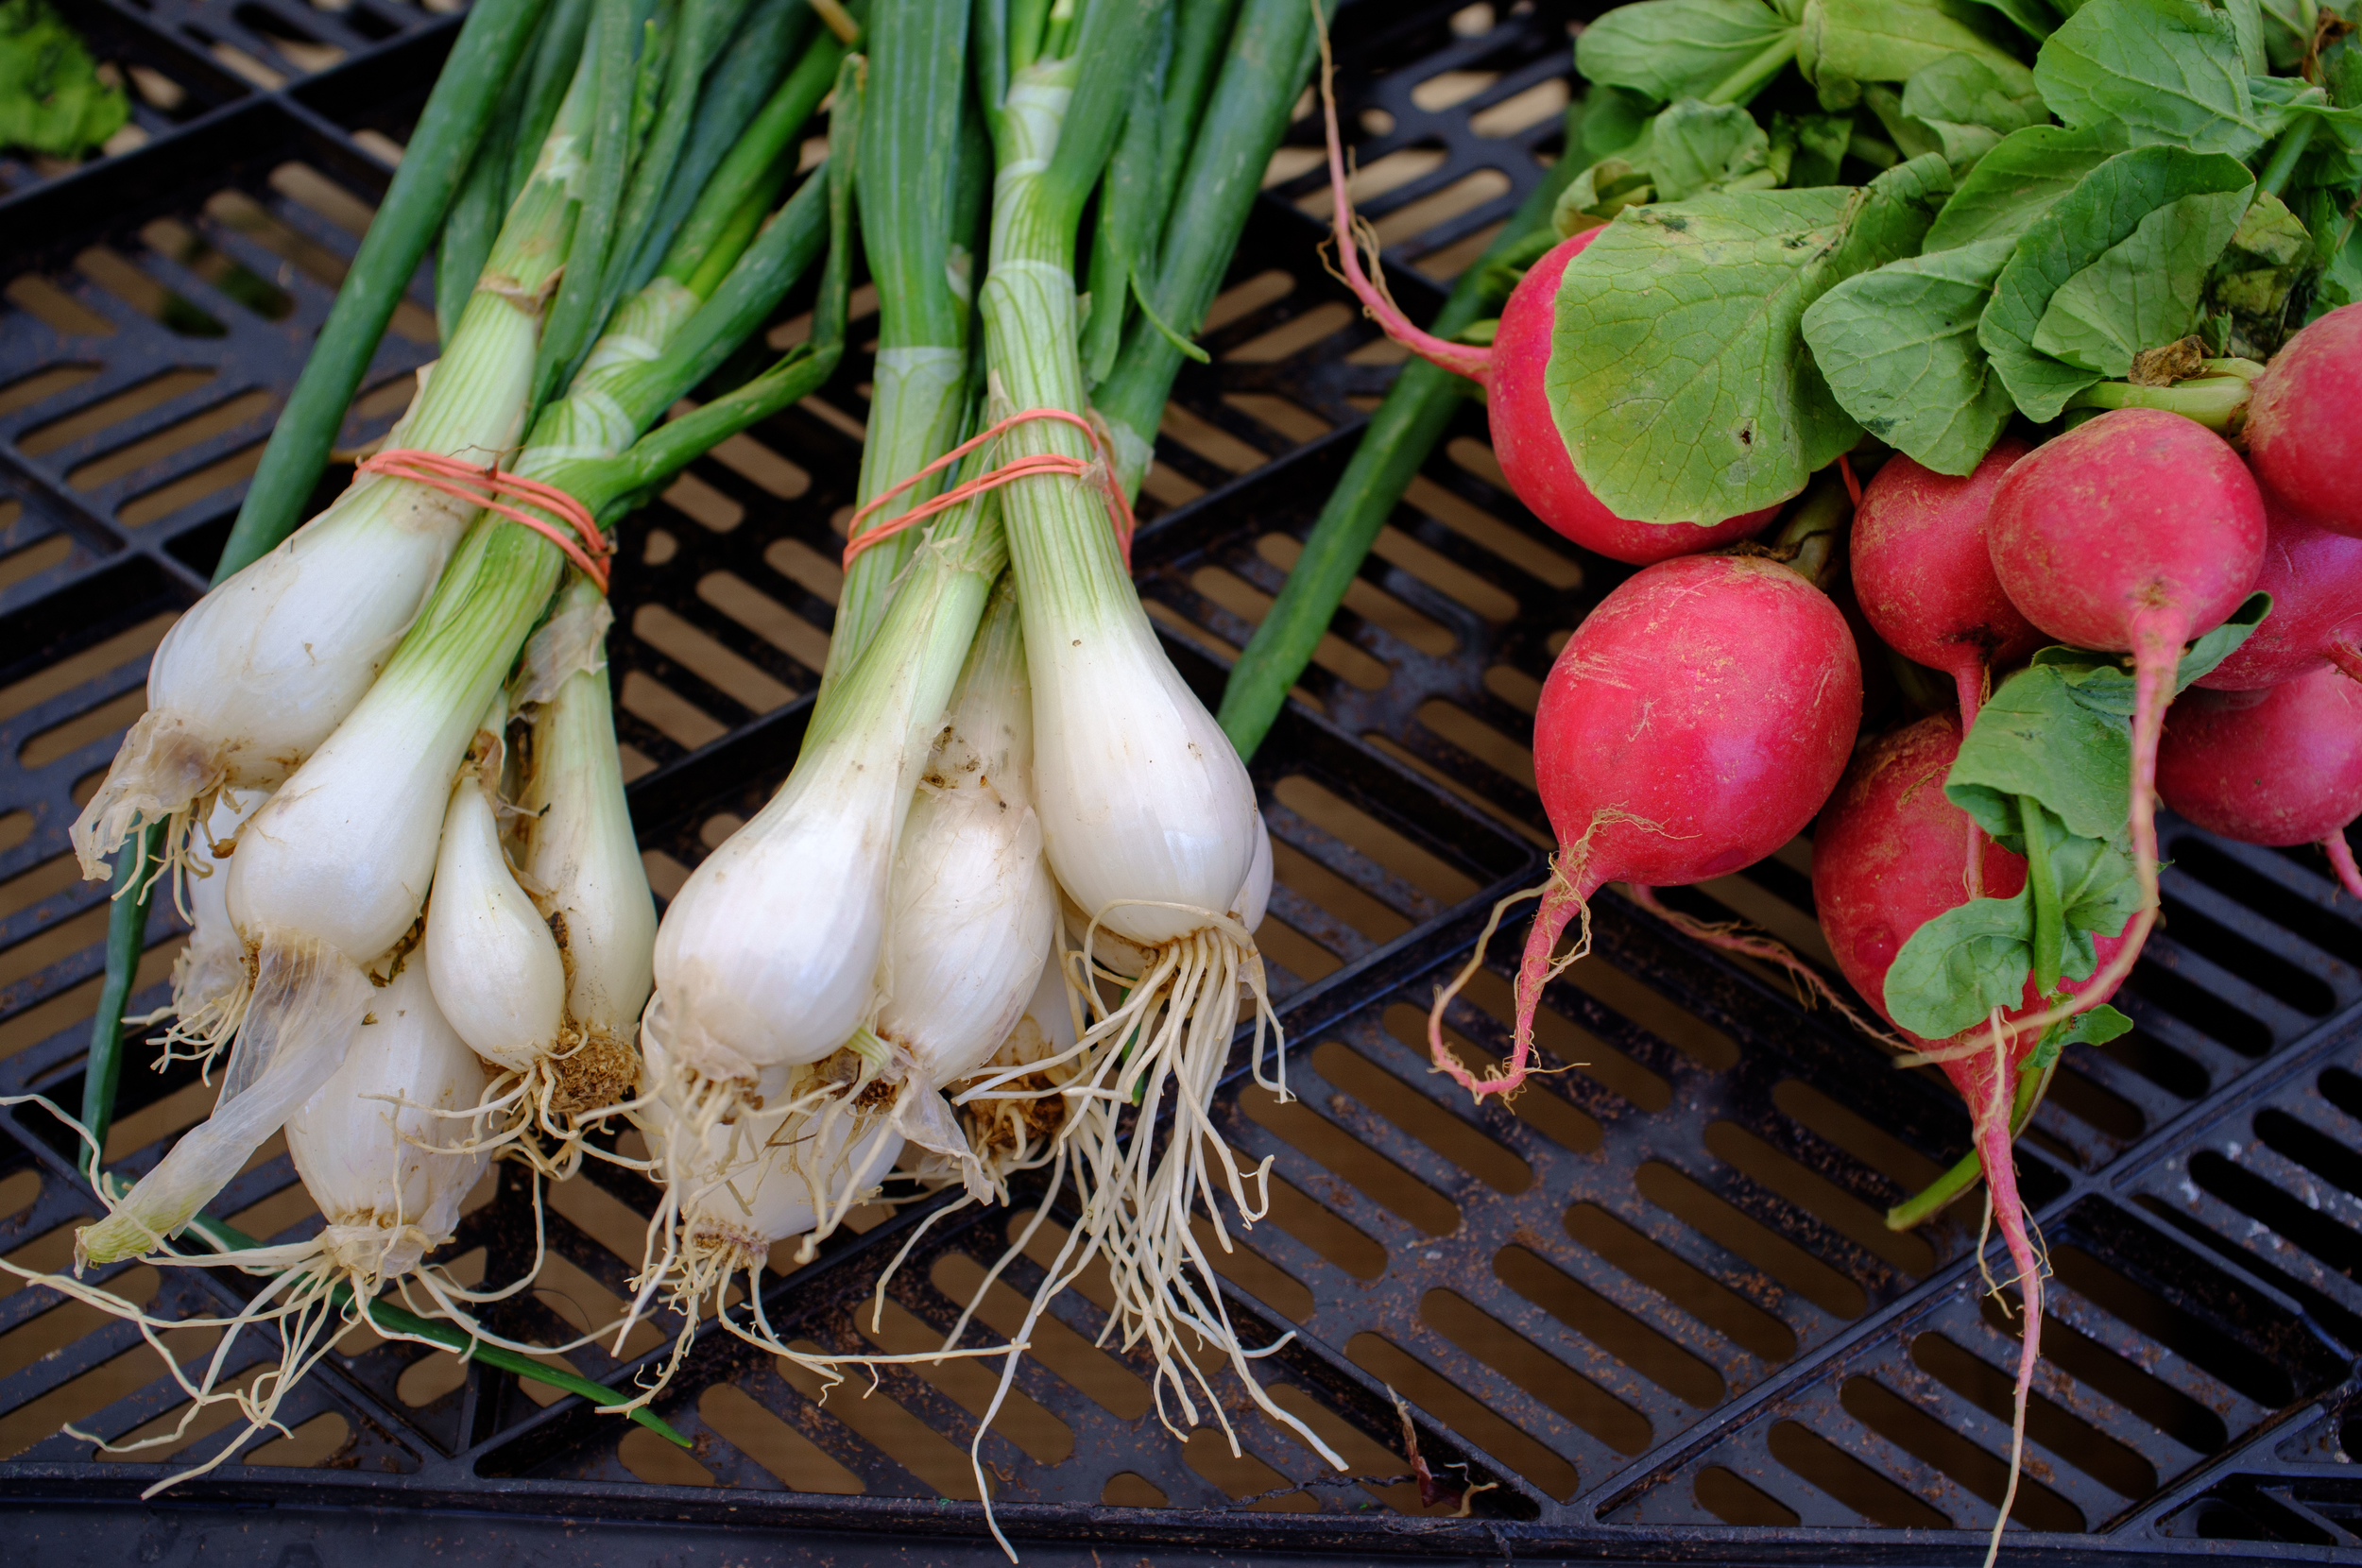 Spring Onions and Radishes at Jersey Farm Produce